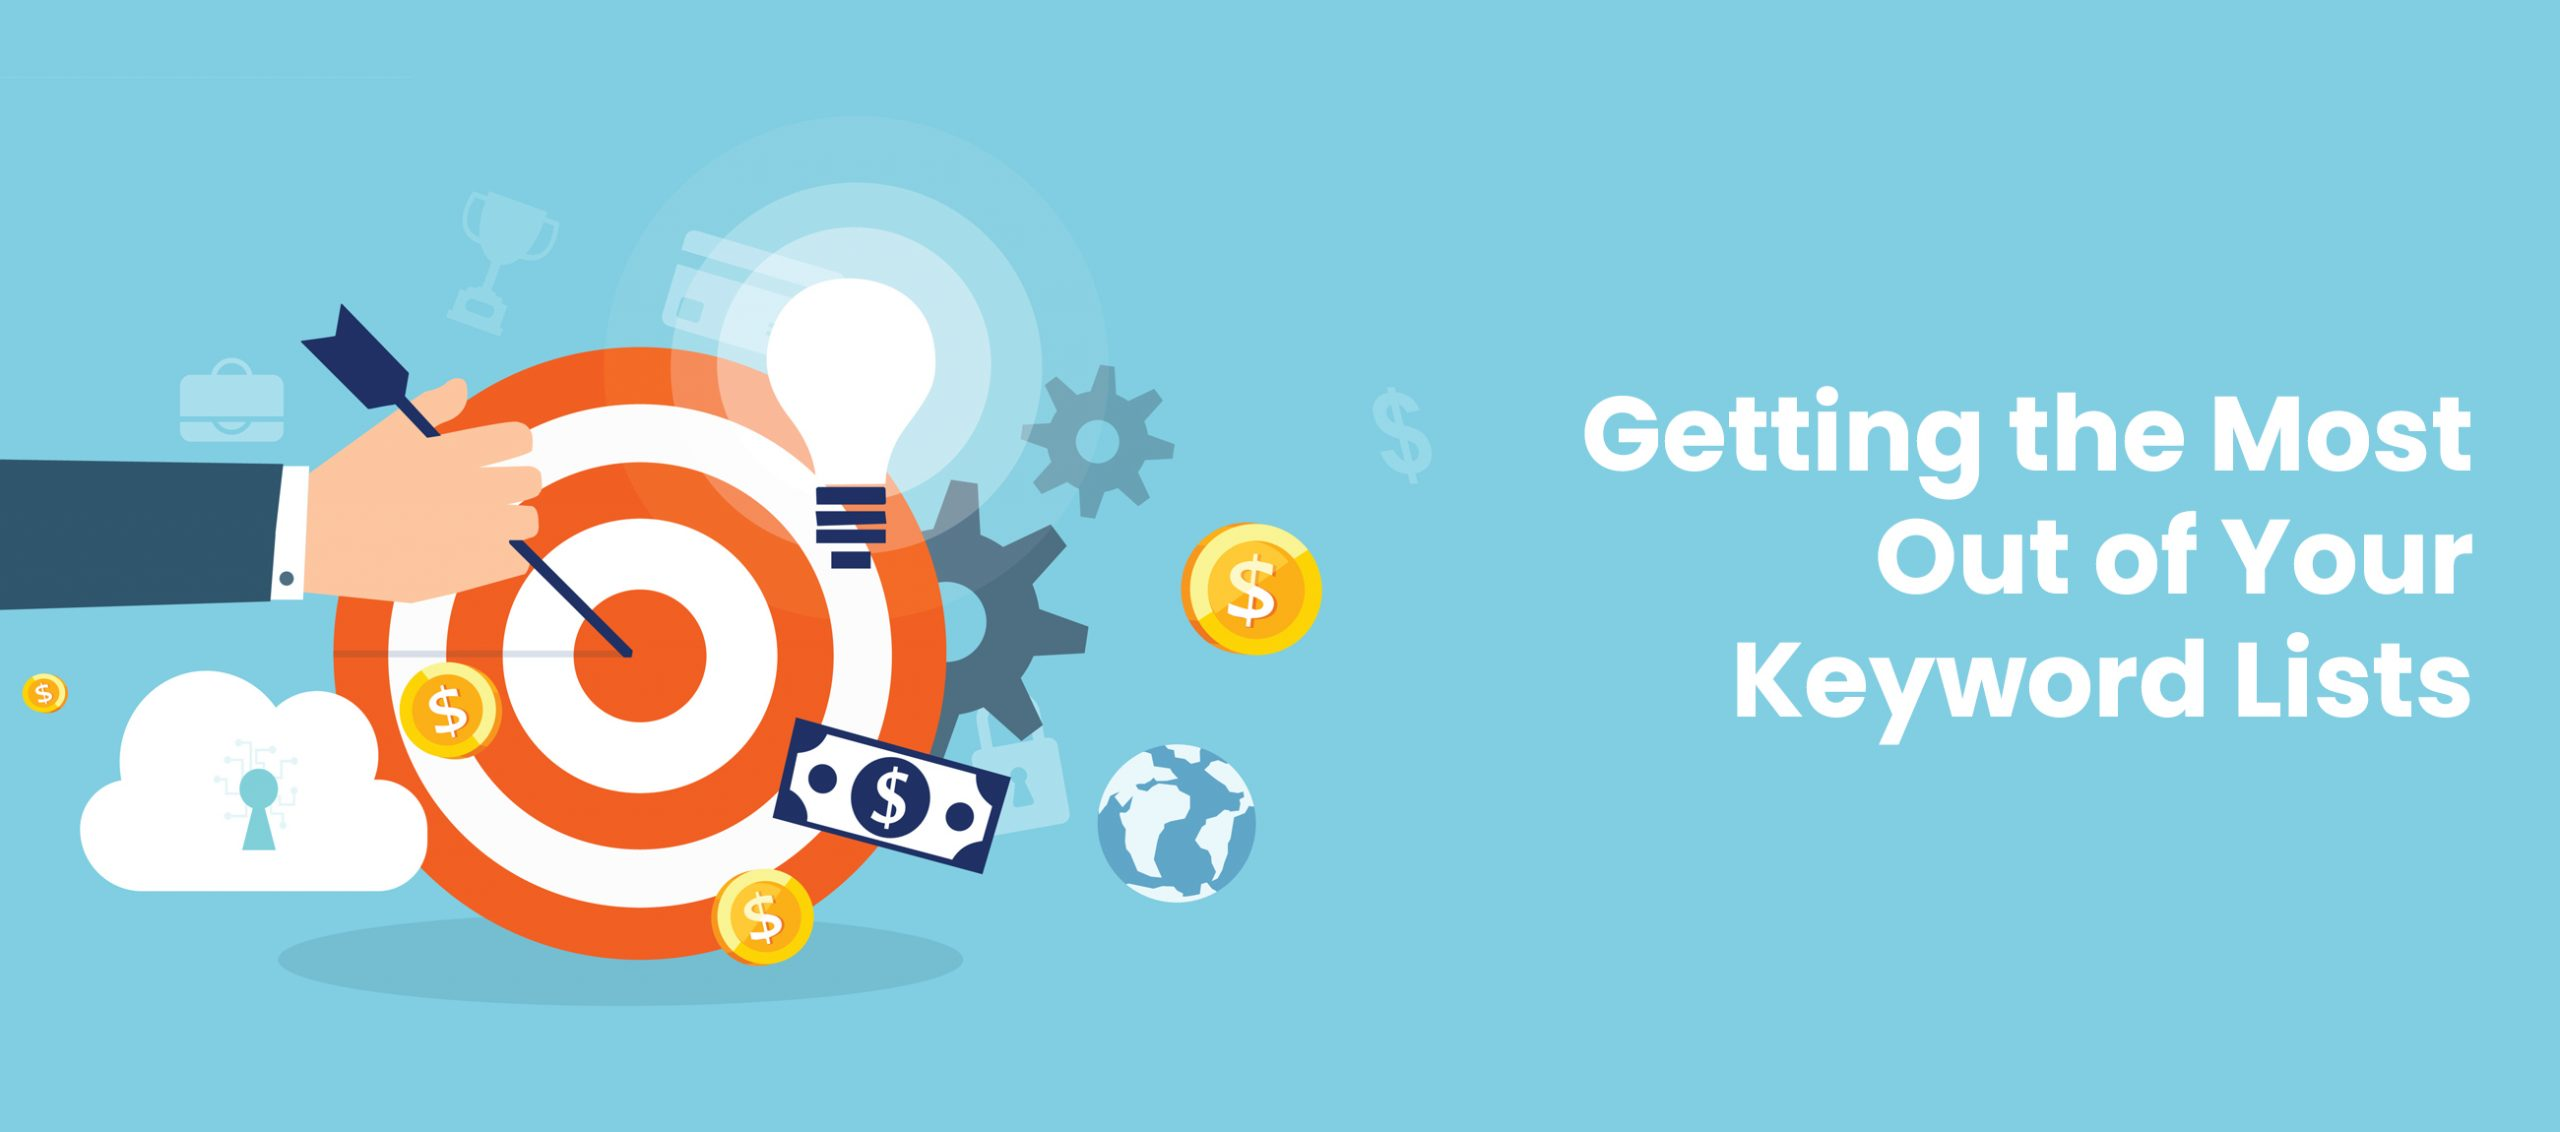 Getting the Most Out of Your Keyword Lists